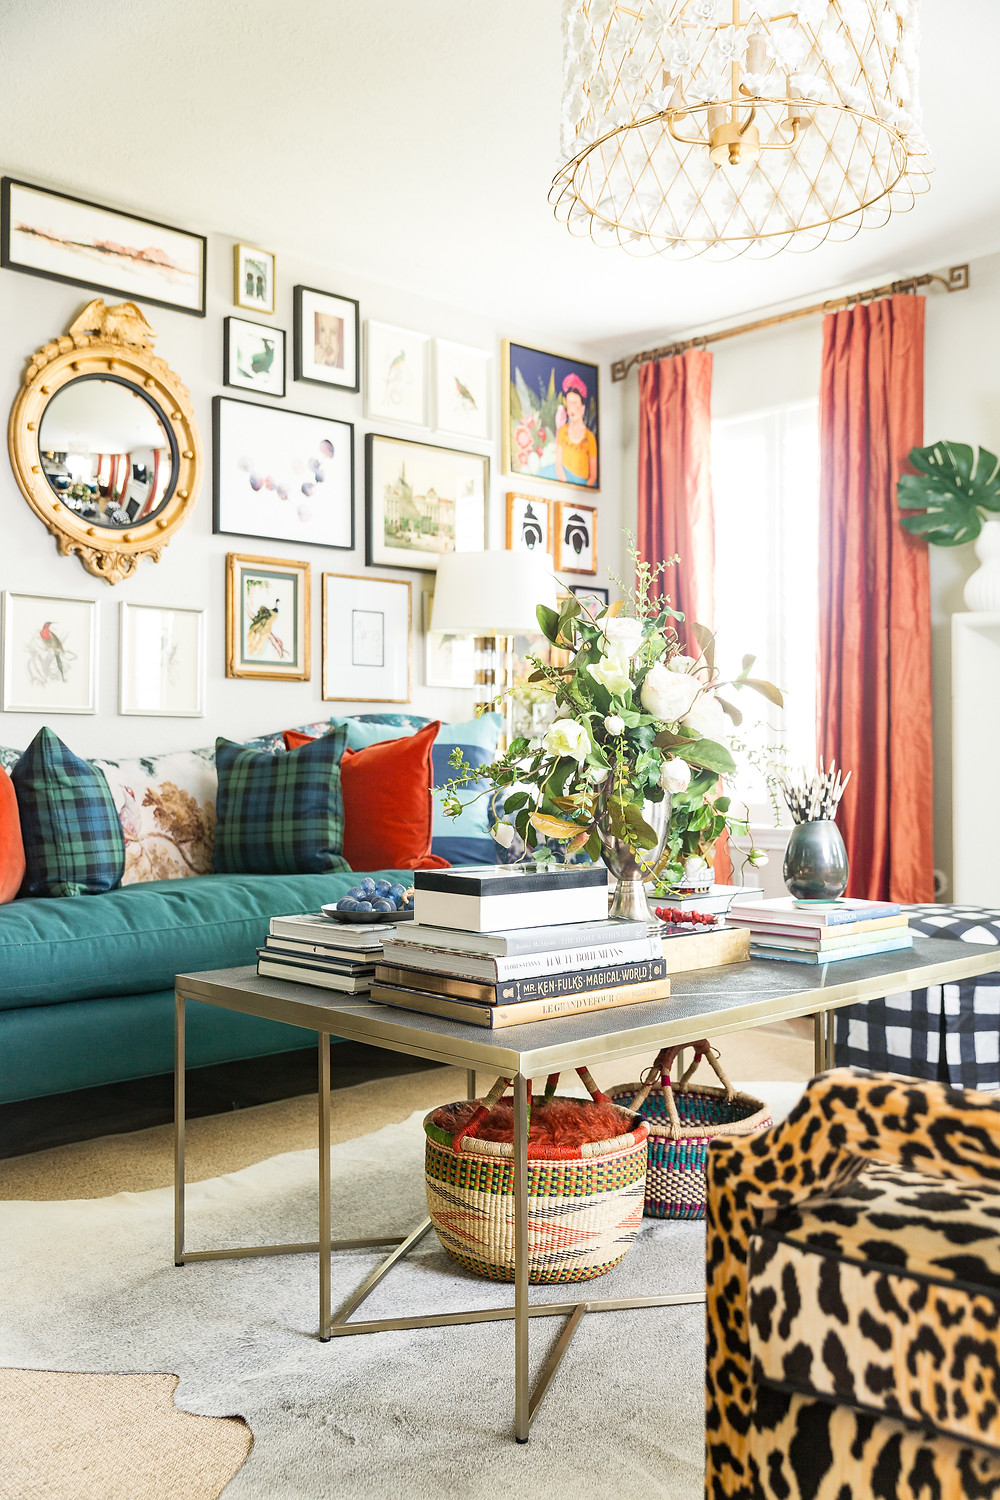 Maximalist living room with gallery wall, cheetah chairs, orange silk drapery and hide rug